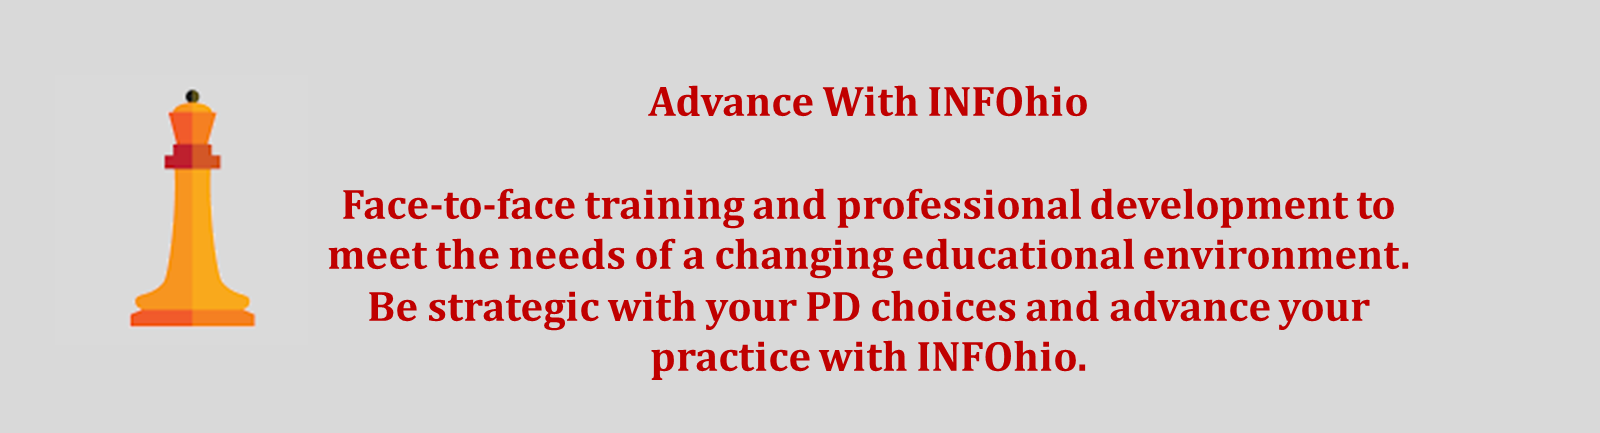 Be Strategic about Your Training and PD: Advance Your Practice with INFOhio